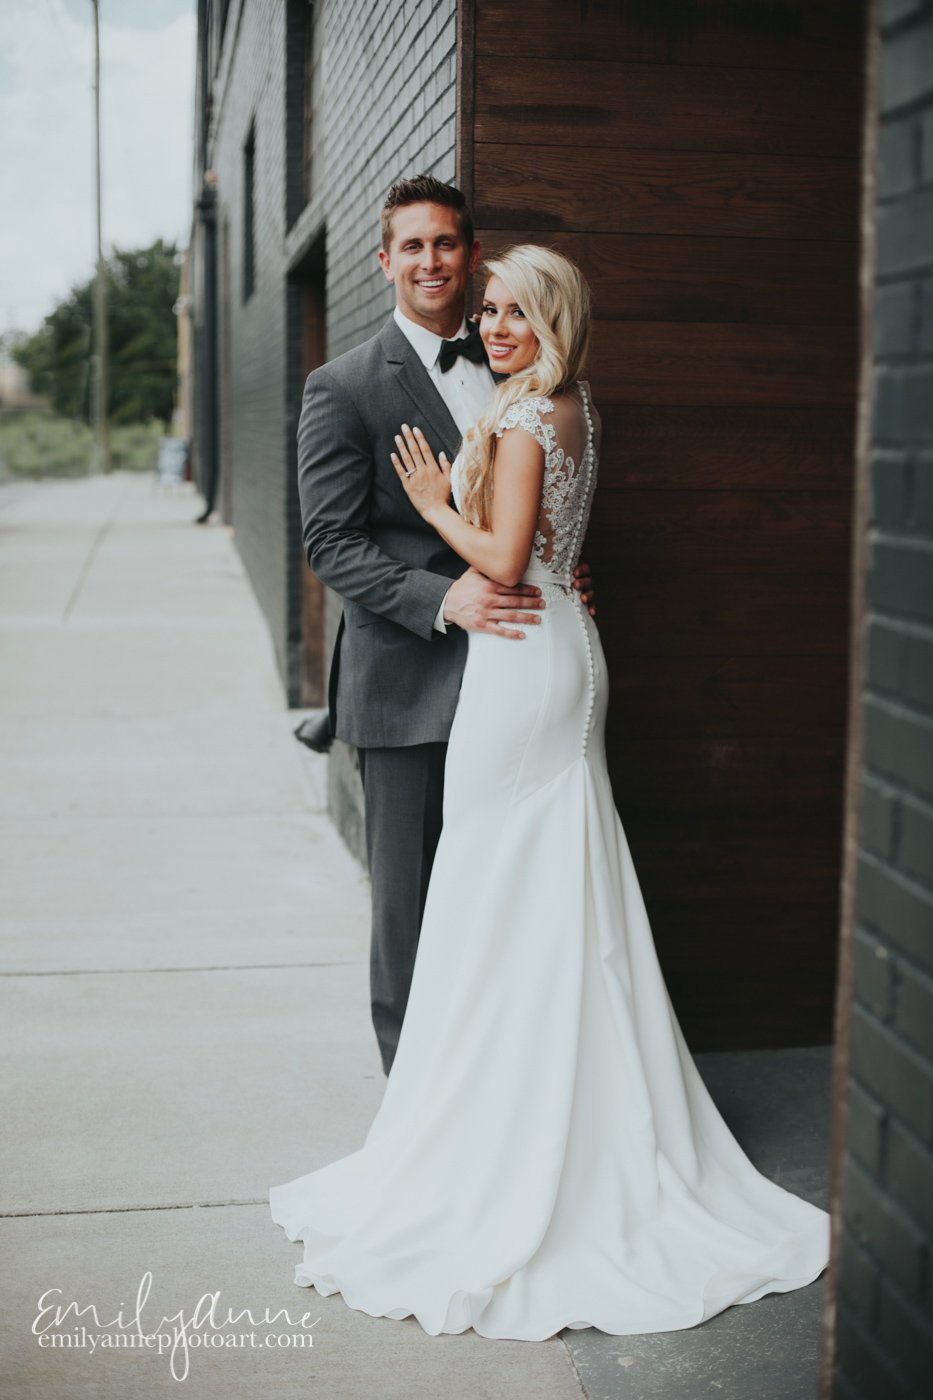 Adorable wedding photos on Clinton Street At Foundry Events in Nashville TN by Best Nashville Wedding Photographer Emily Anne